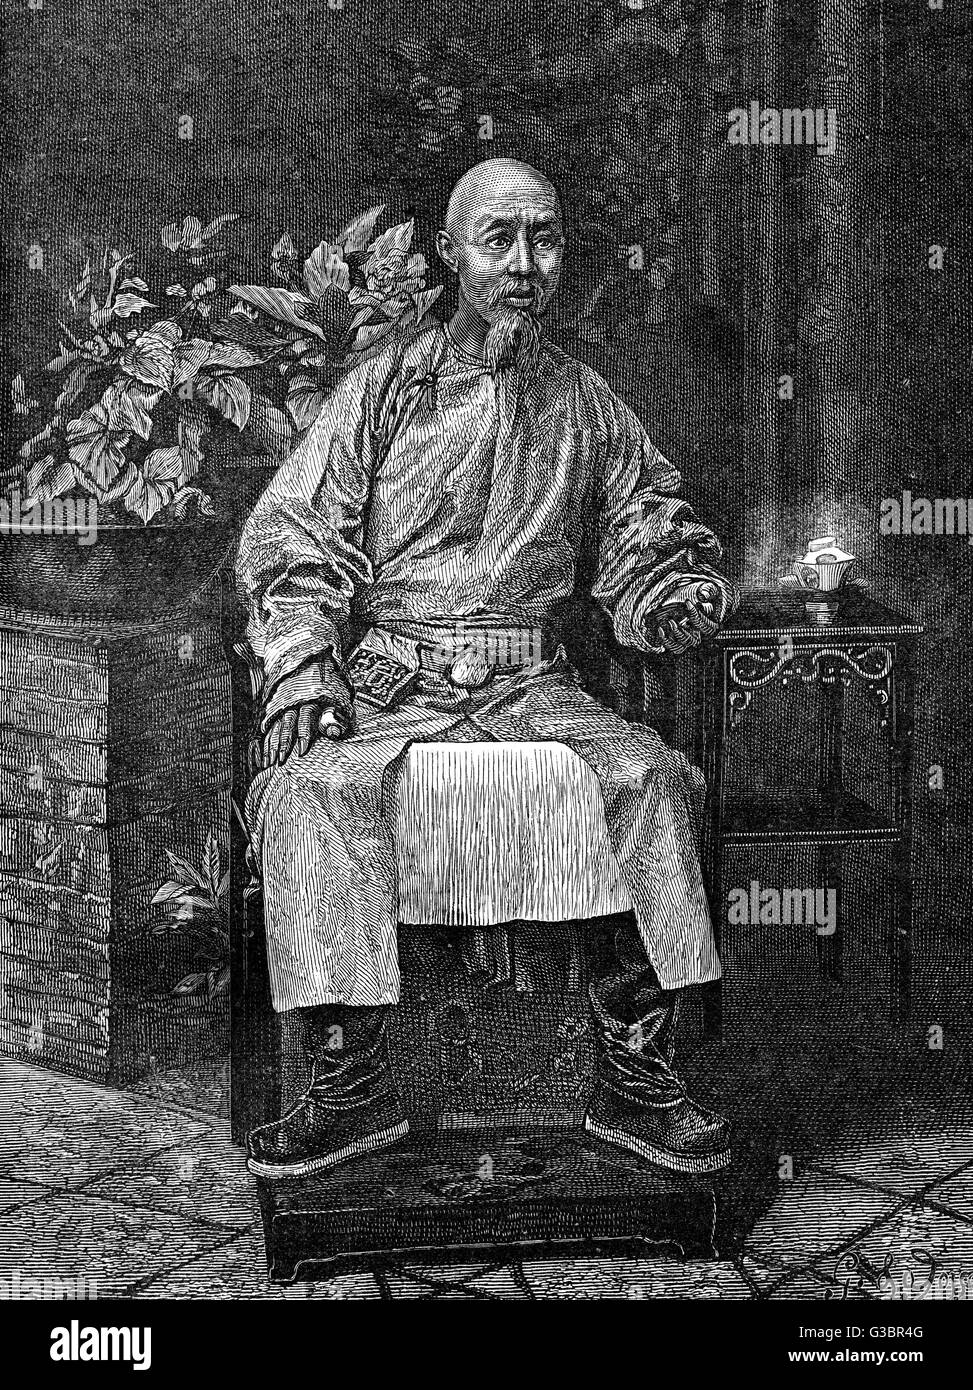 TIN-LIN Chinese administrator,  governor of Canton (now  Guangzhou or Kwangchow)       Date: circa 1860 - Stock Image